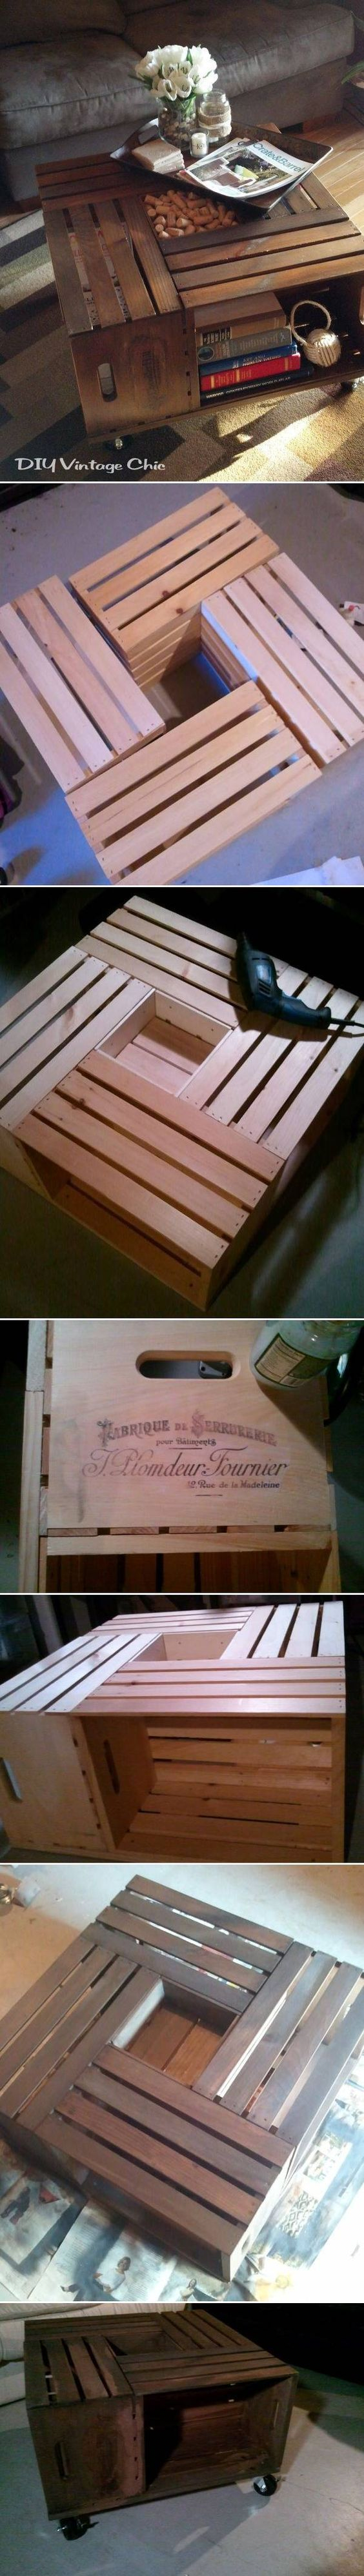 4. A SMALLER DESIGN FOR YOUR CRATE COFFEE TABLE